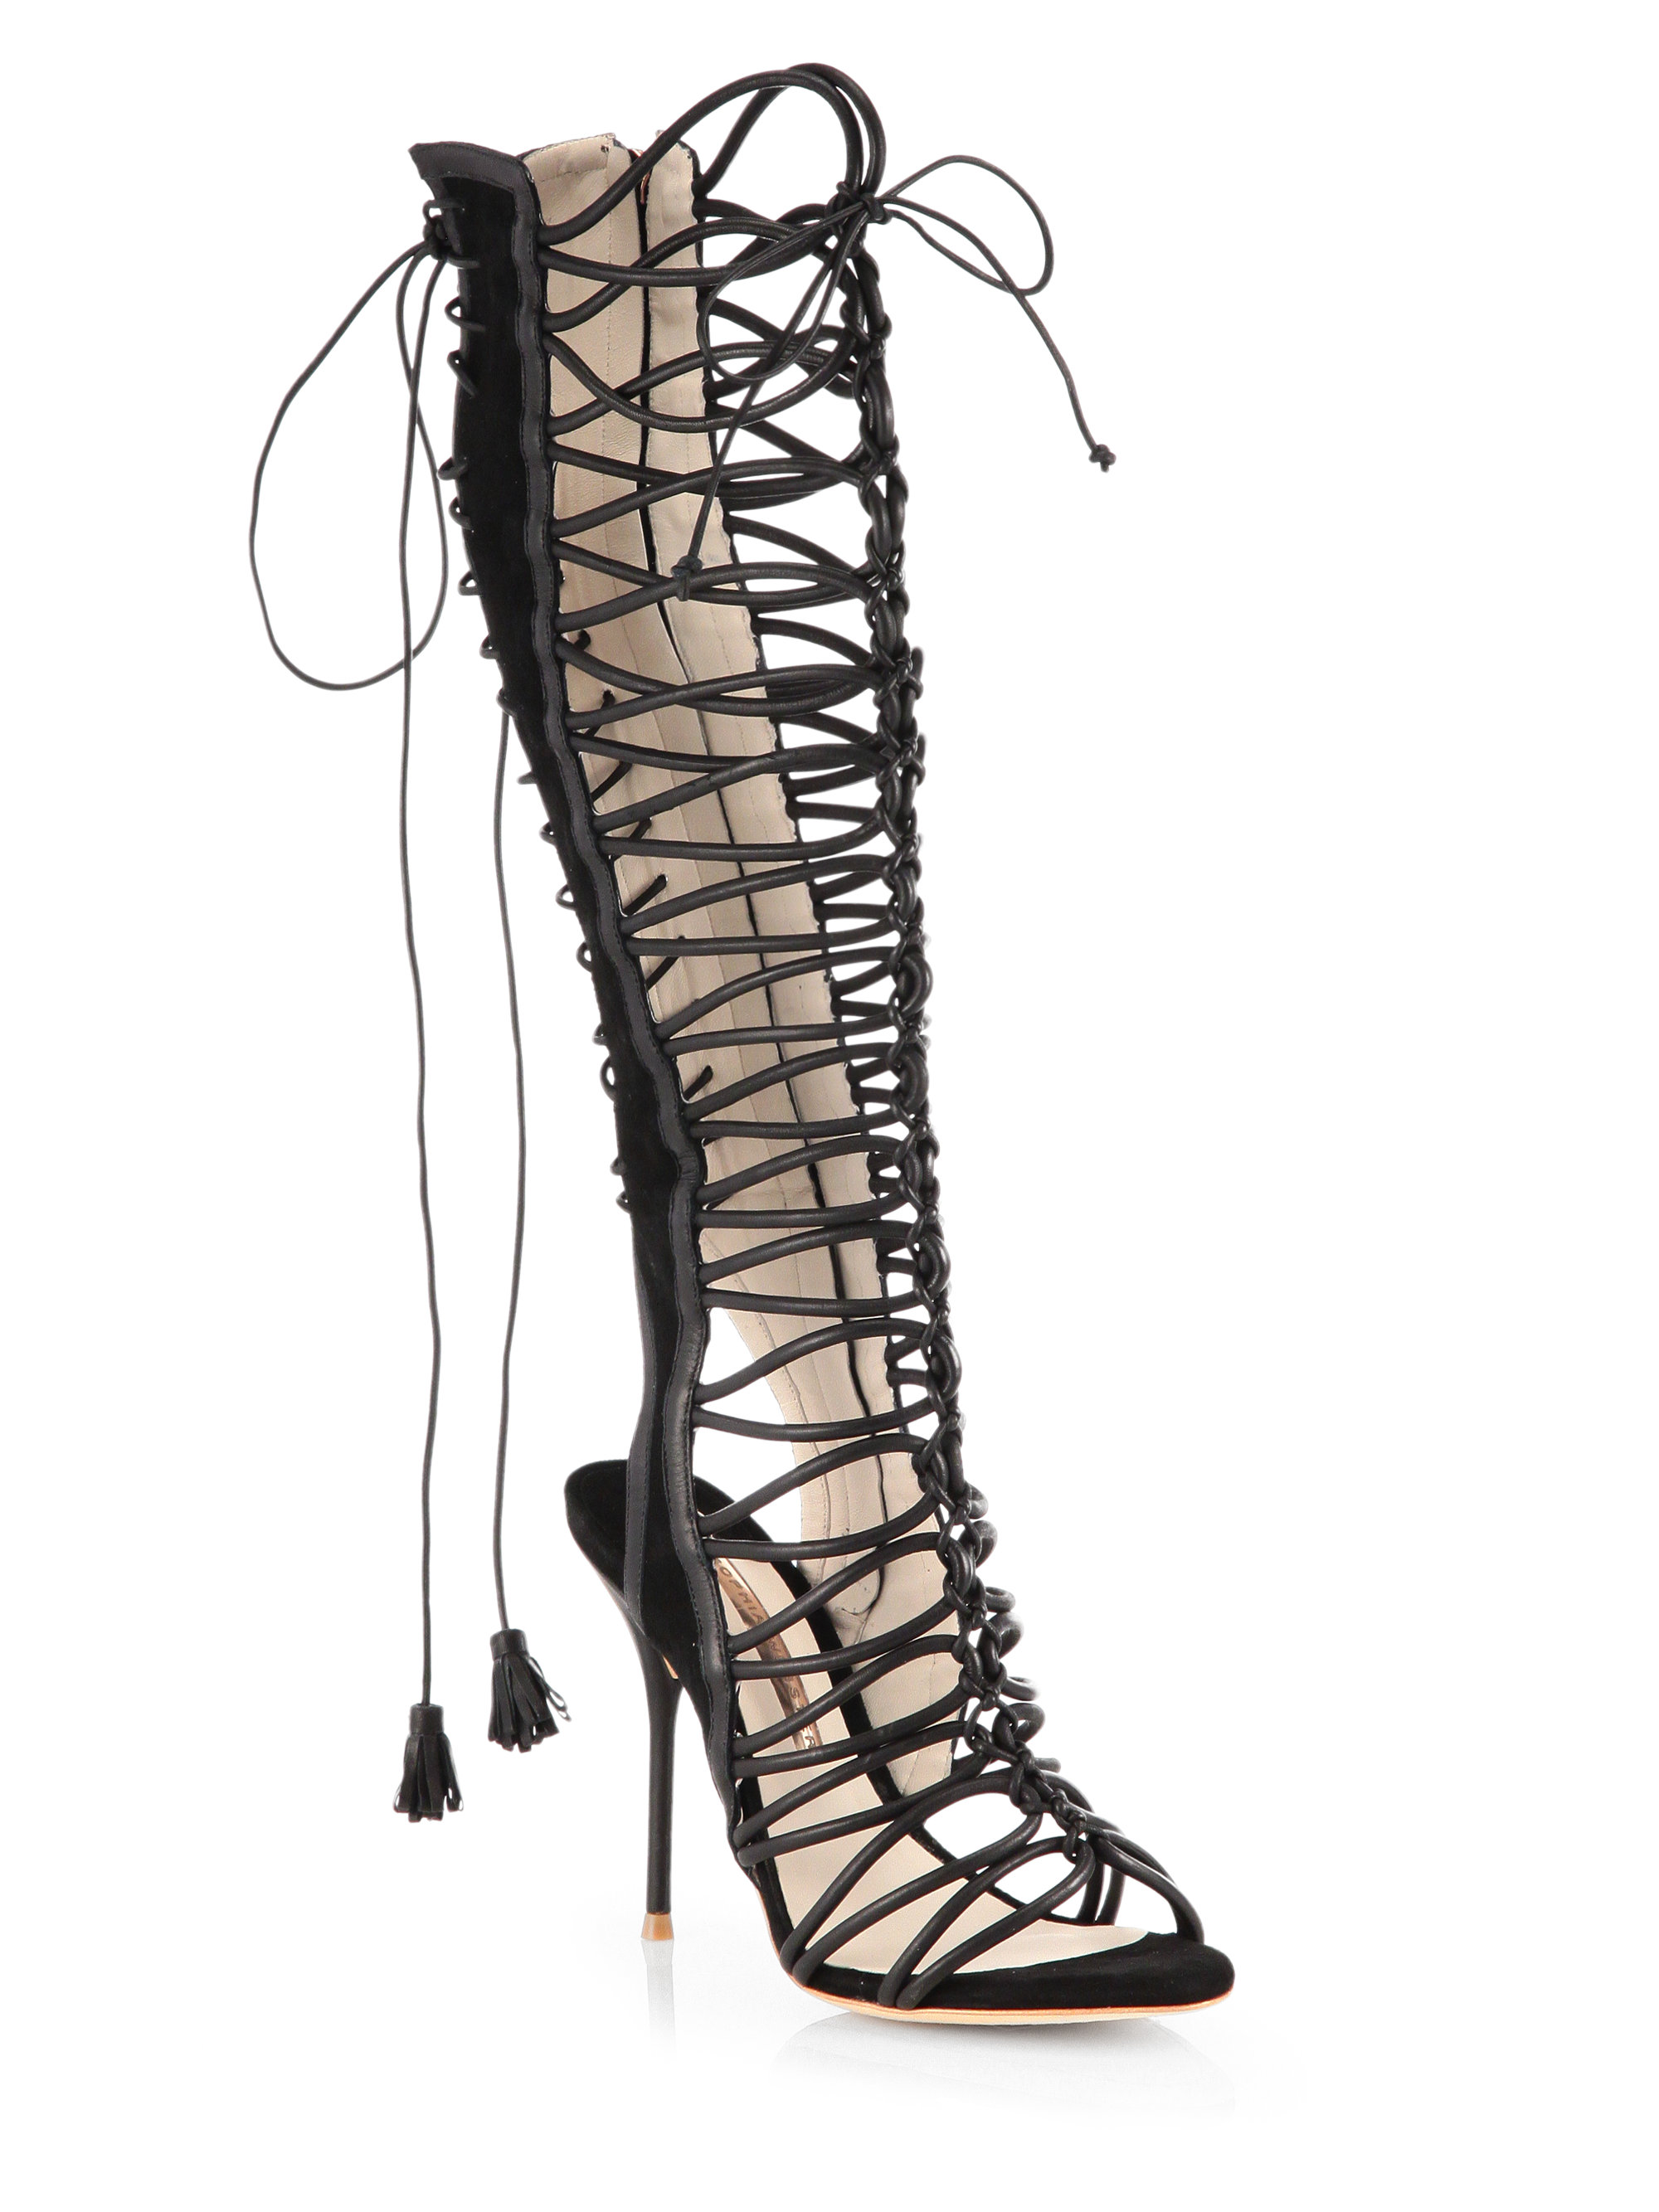 Lyst - Sophia Webster Clementine Lace-Up Sandal in Natural